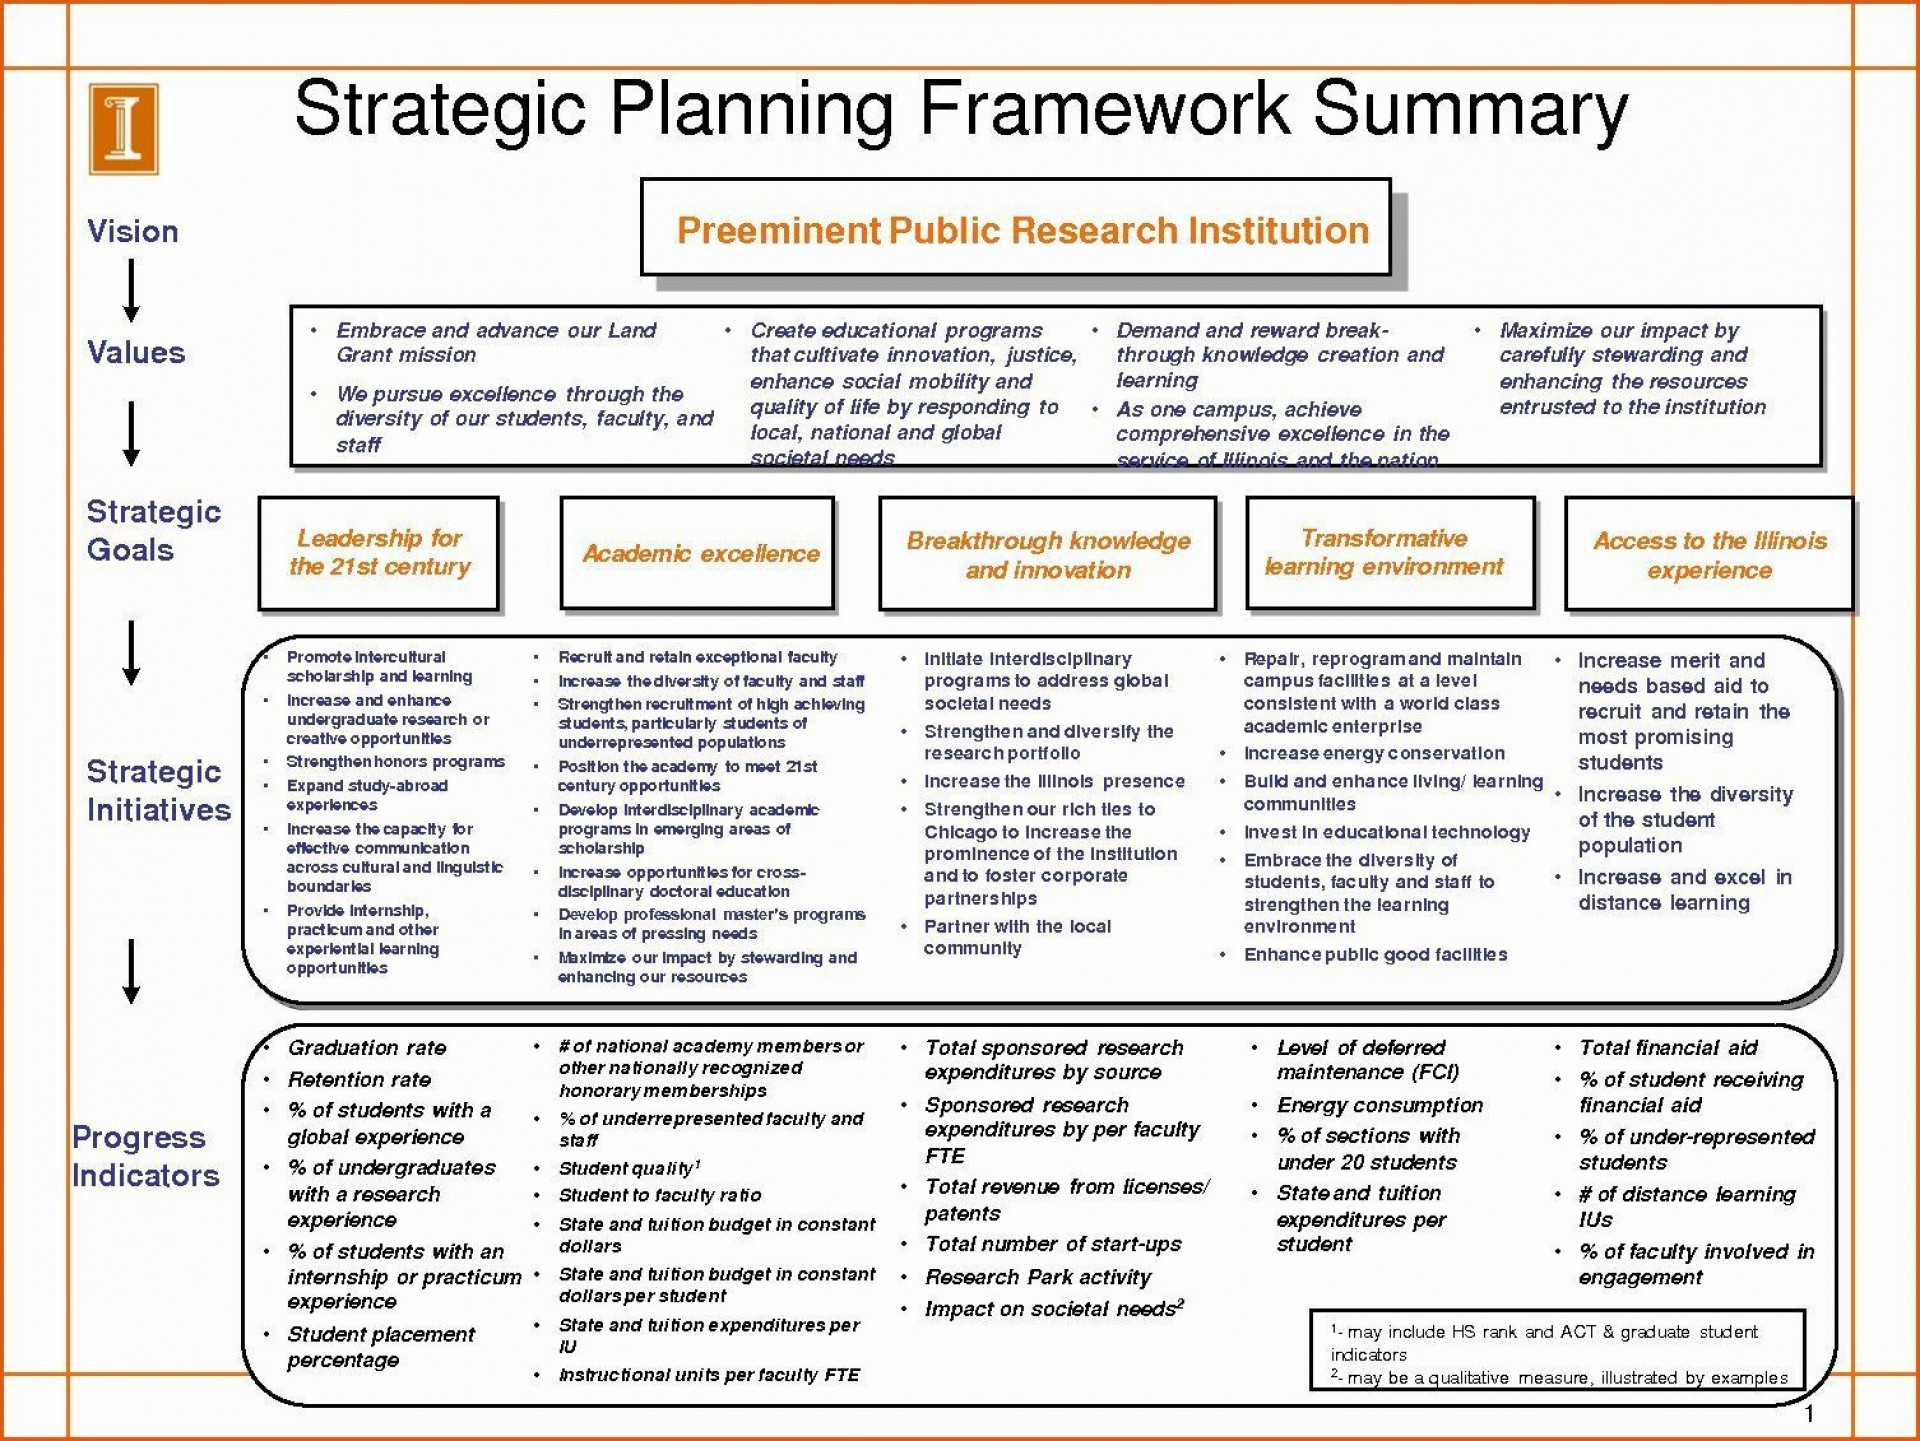 004 Exceptional Strategic Plan Outline Template Example  Marketing1920